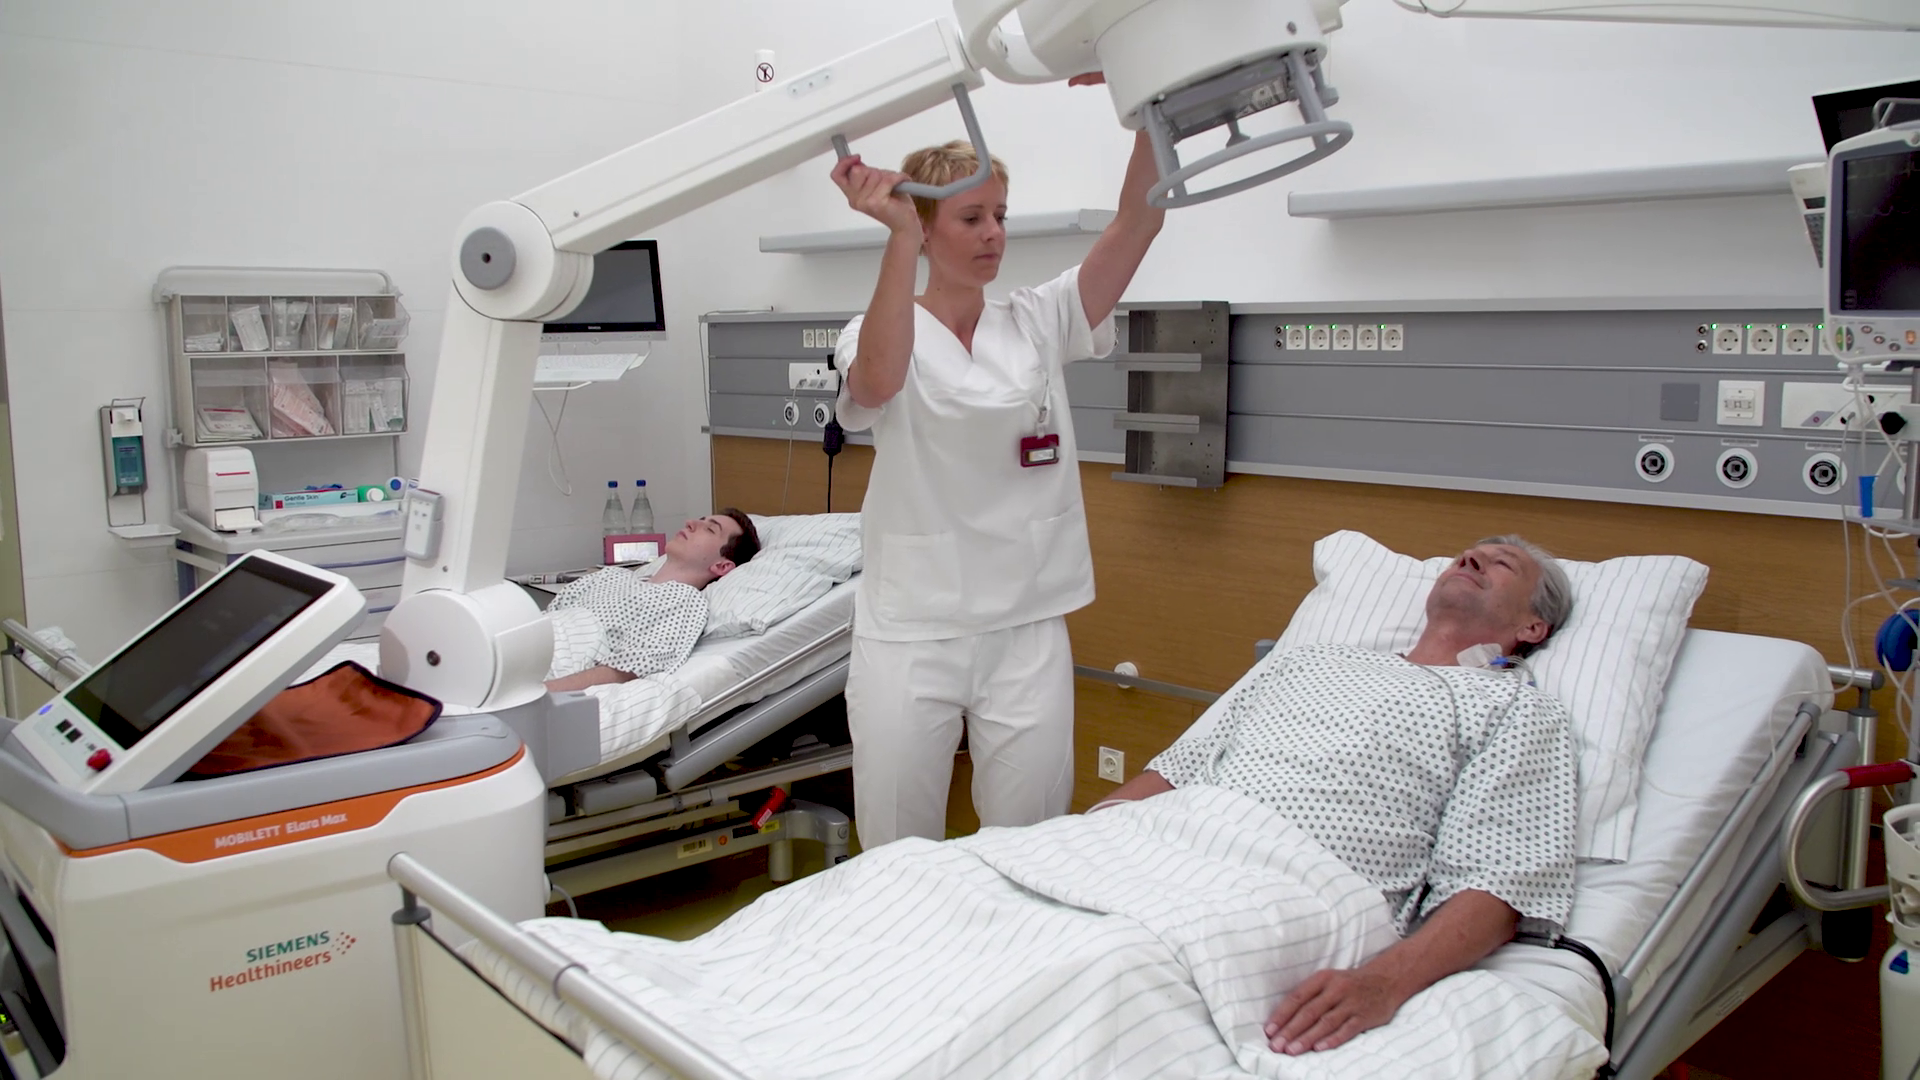 MOBILETT Elara Max – Stand out from the crowd in mobile x-ray imaging